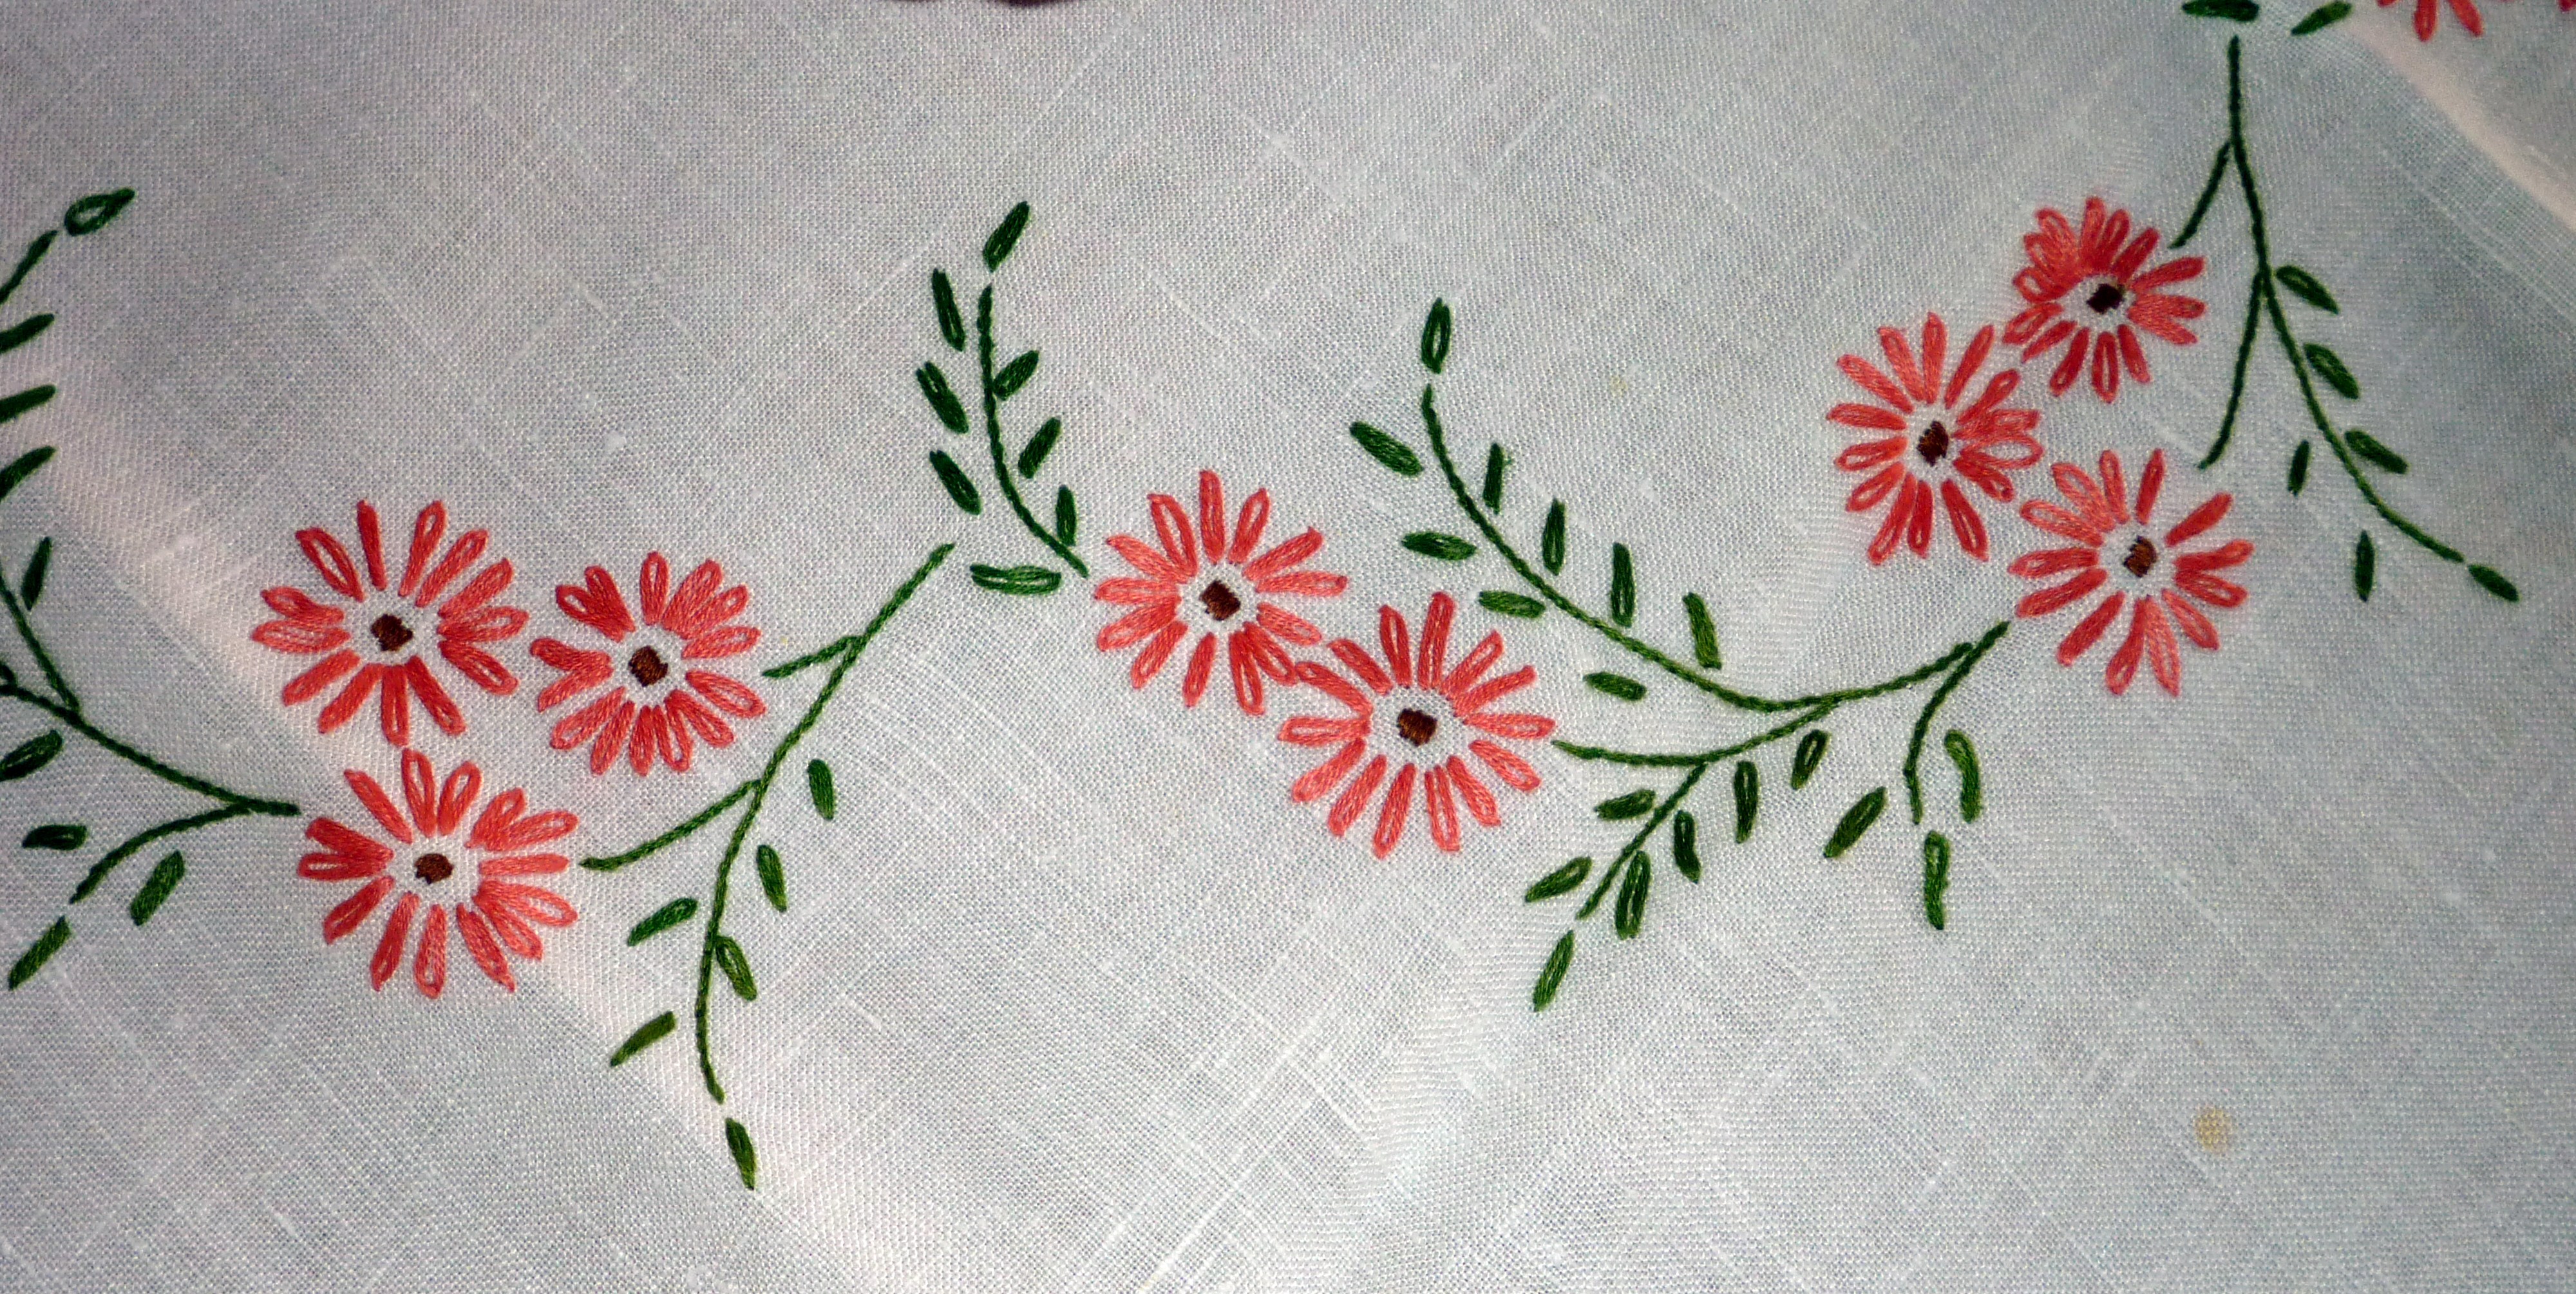 Table cover embroidery designs - Mom S Embroidered Tablecloth